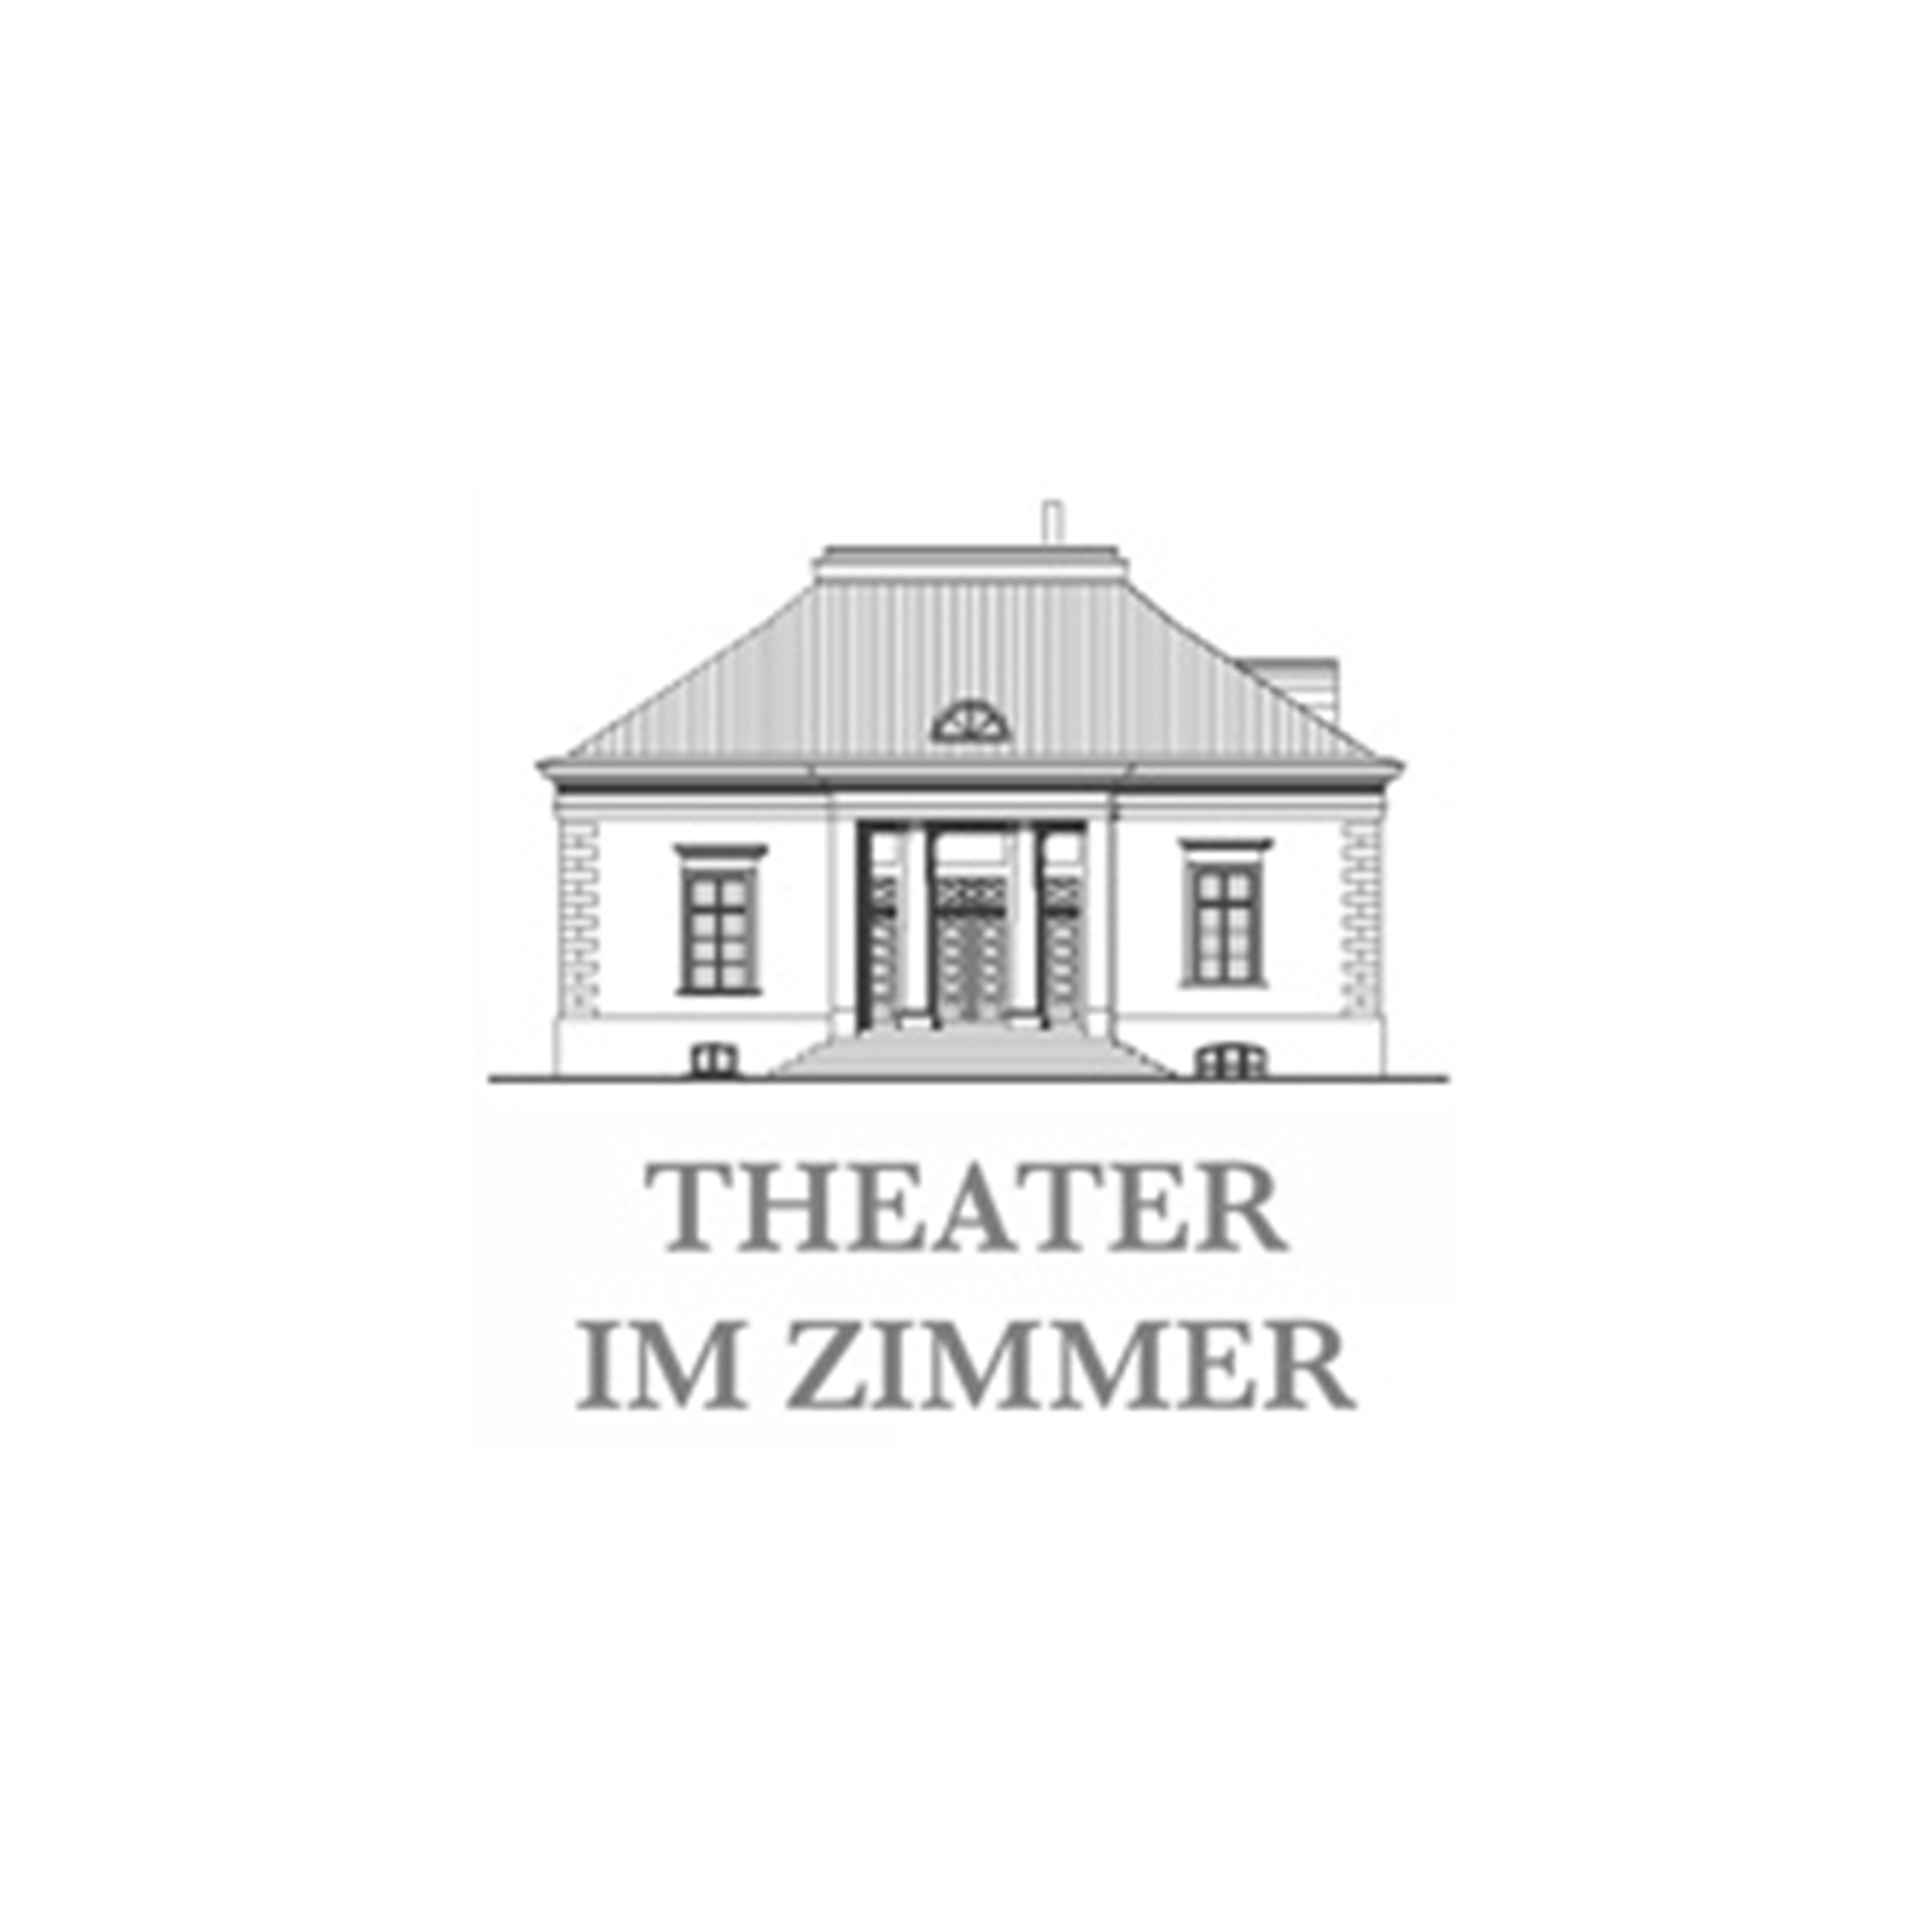 Eventlocation Theater Im Zimmer